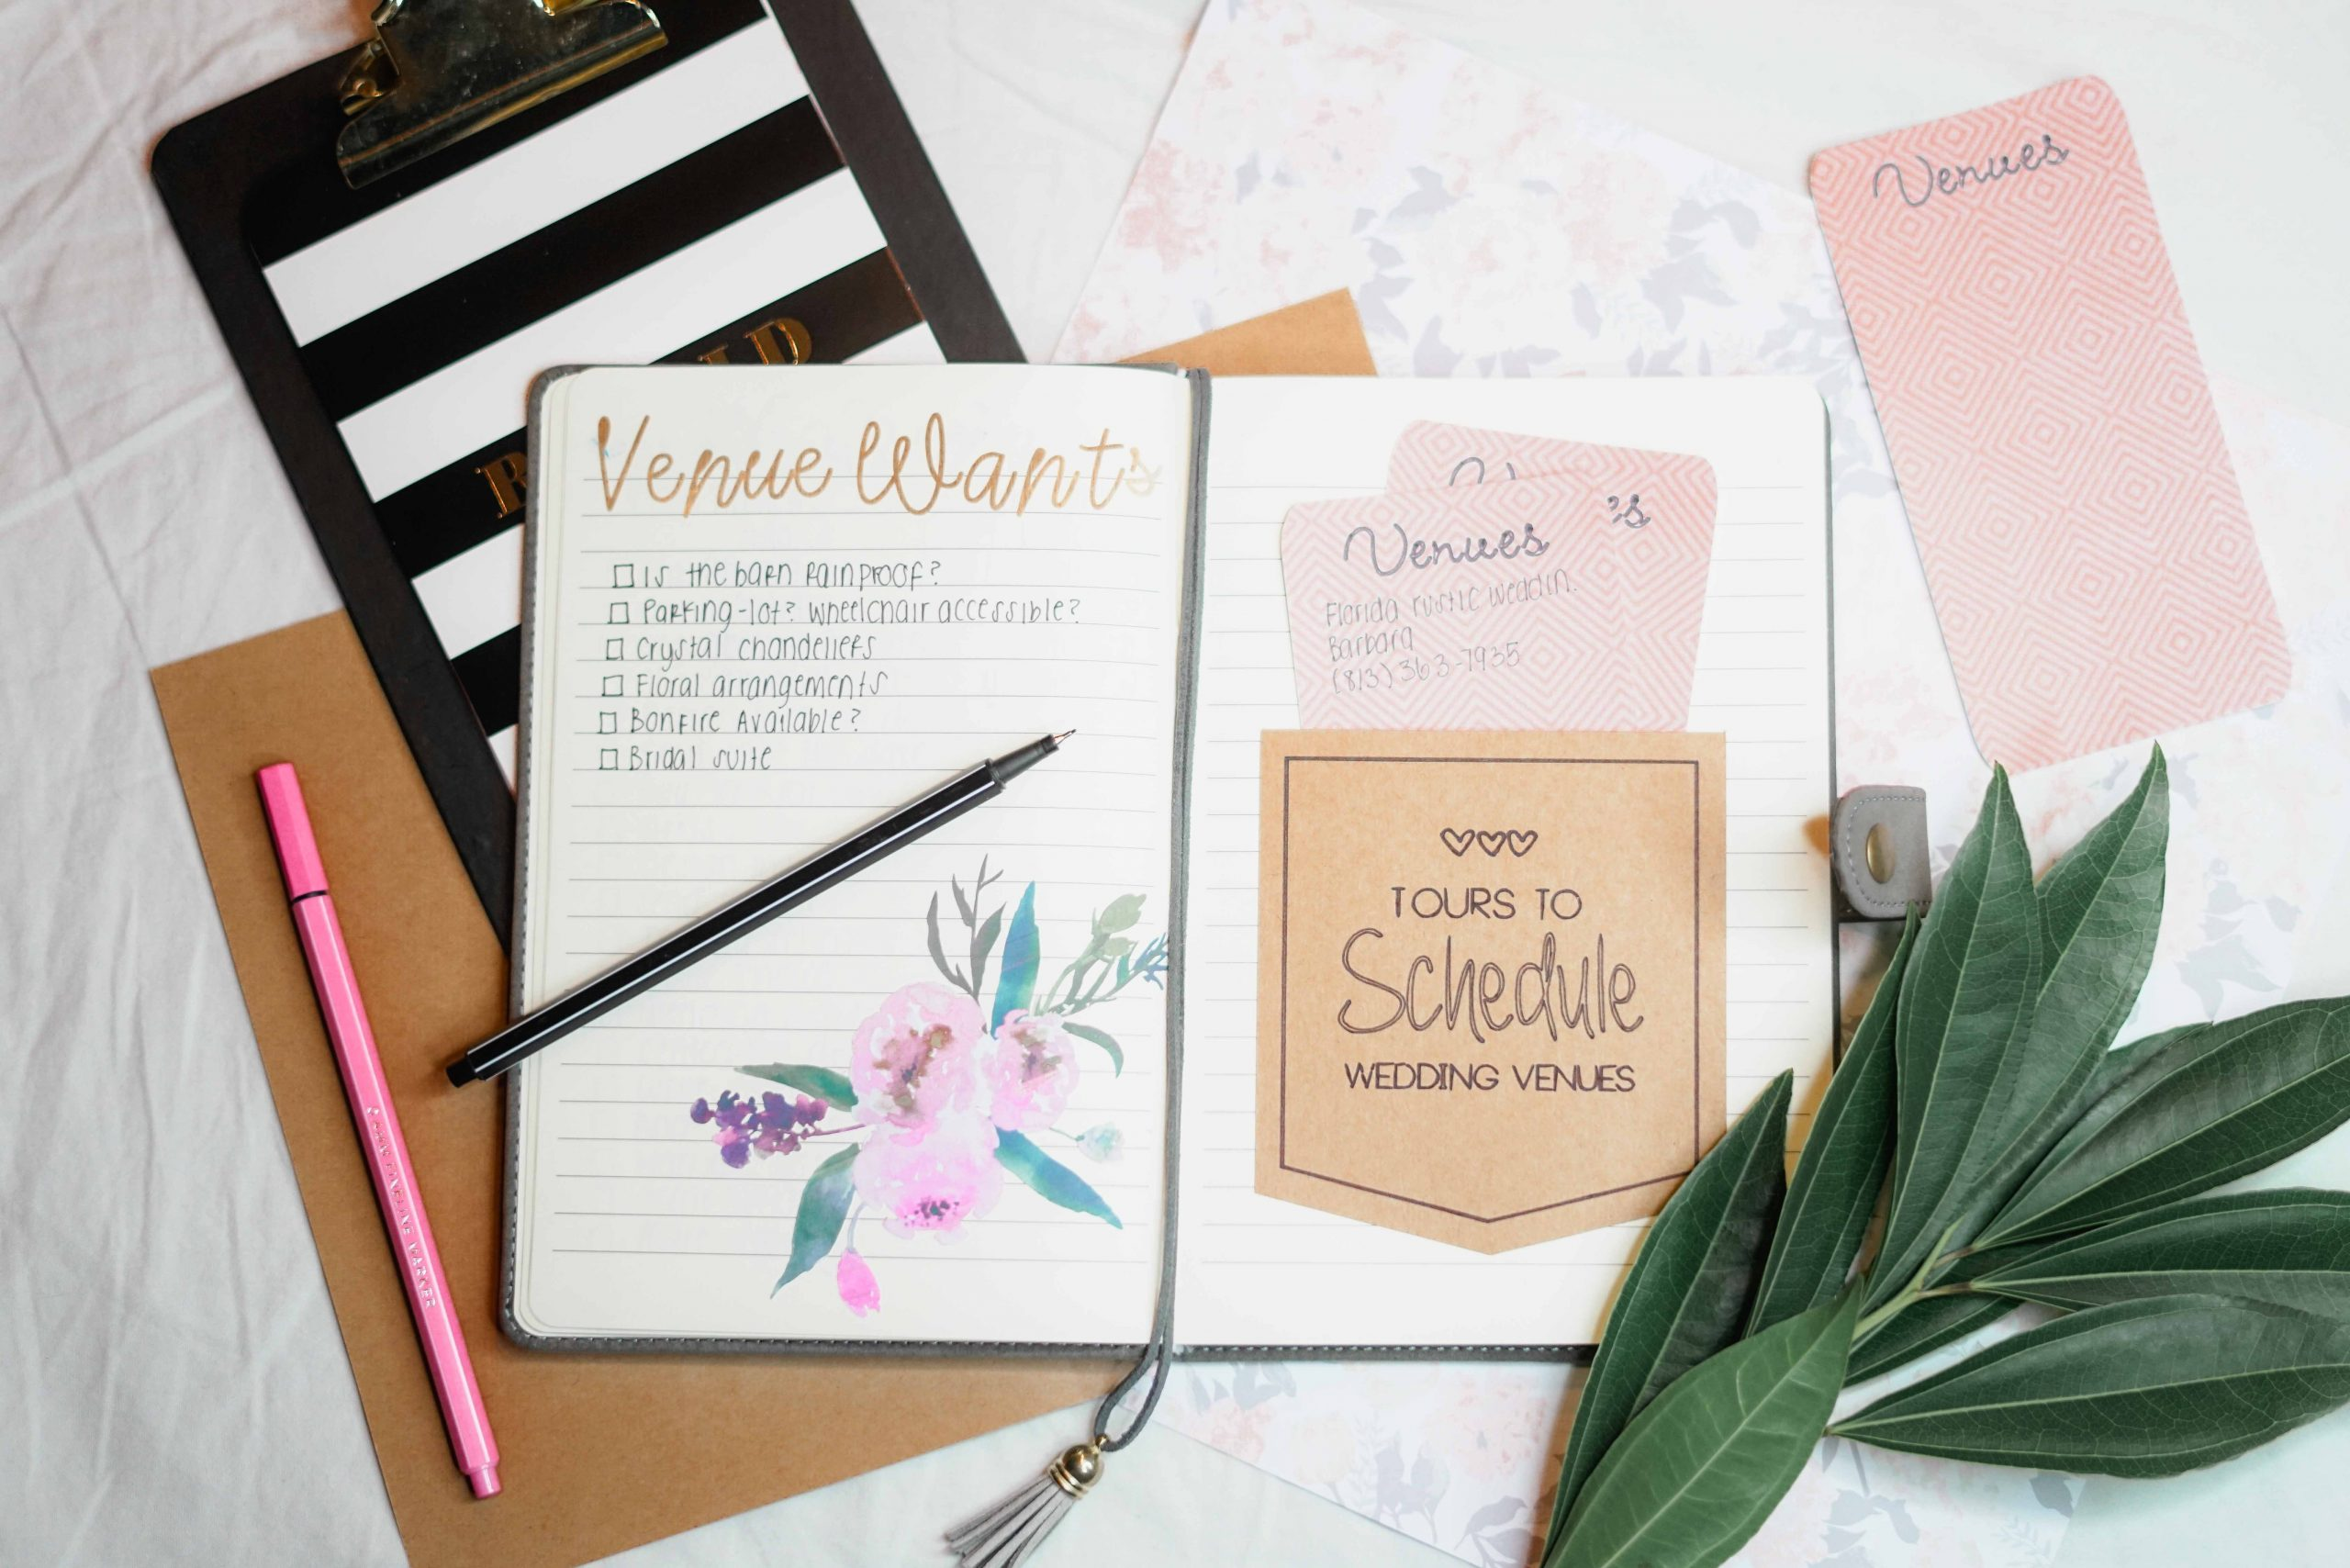 Why should I hire a Wedding Planner?